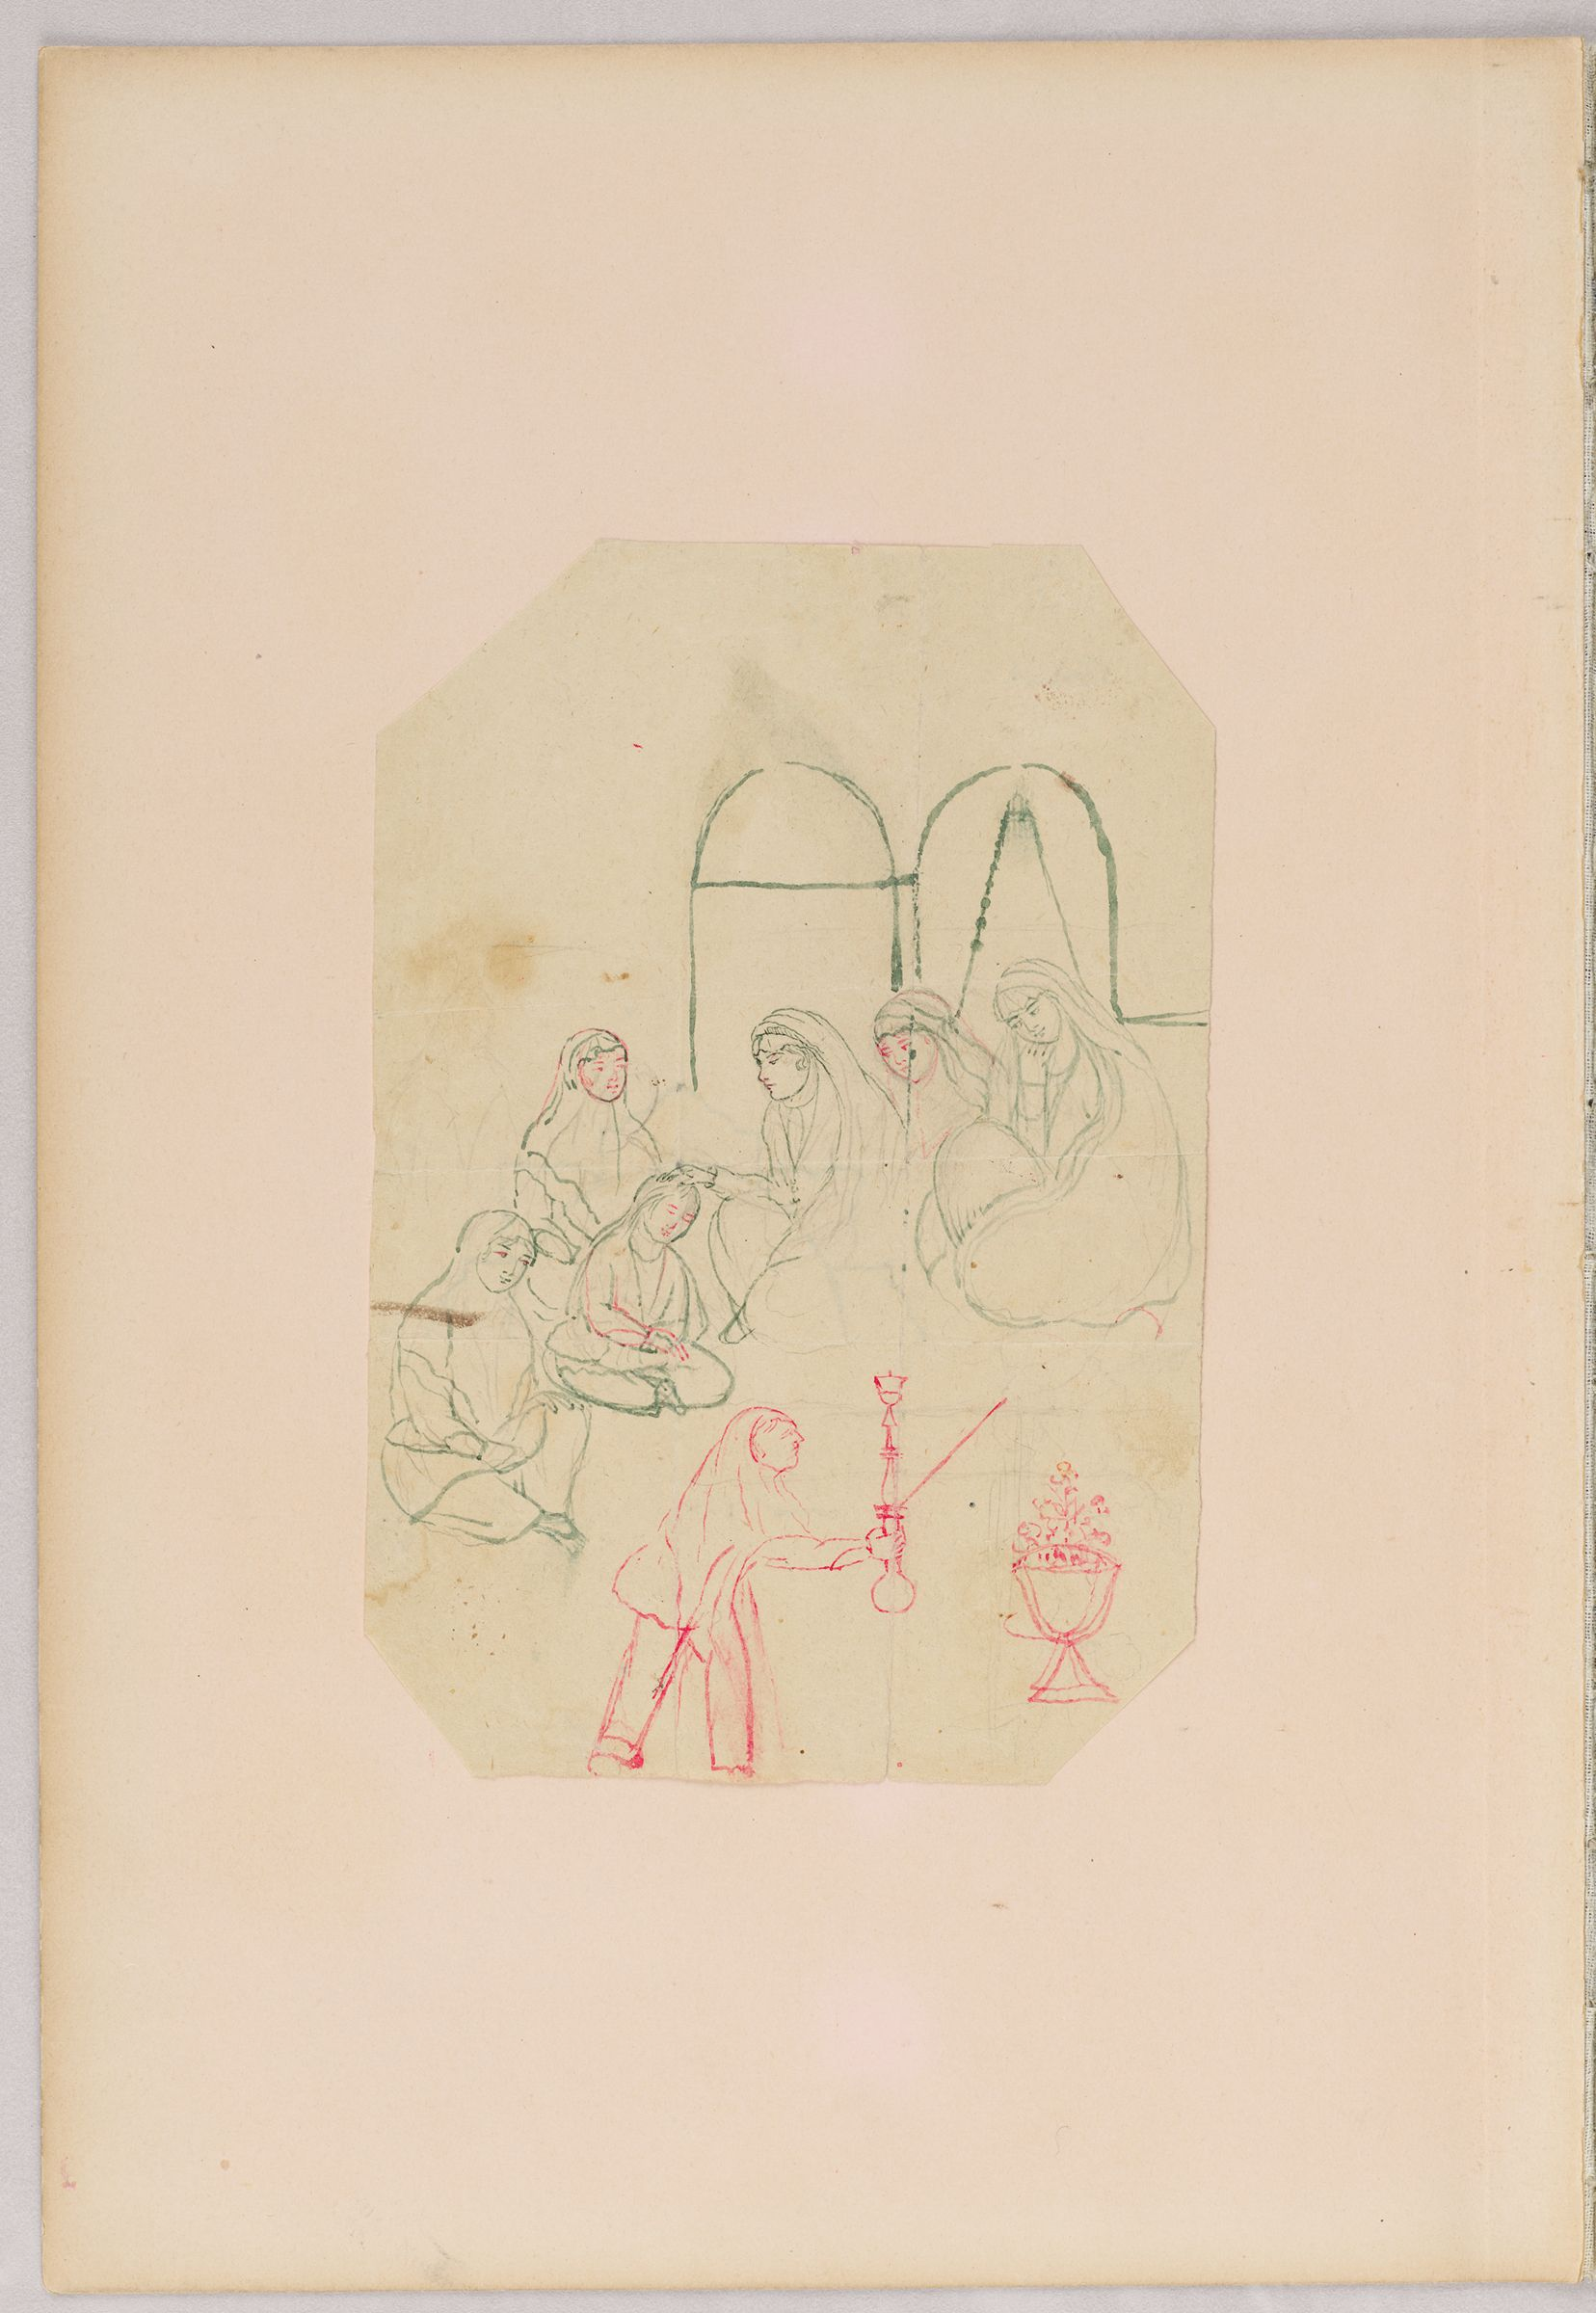 Folio 28 From An Album Of Drawings And Paintings: Domestic Scene With Women And Child (Recto); Three Sheets: Female Musician Playing Bowed Instrument; Embracing Couple; Man Hawking On Horseback (Verso)